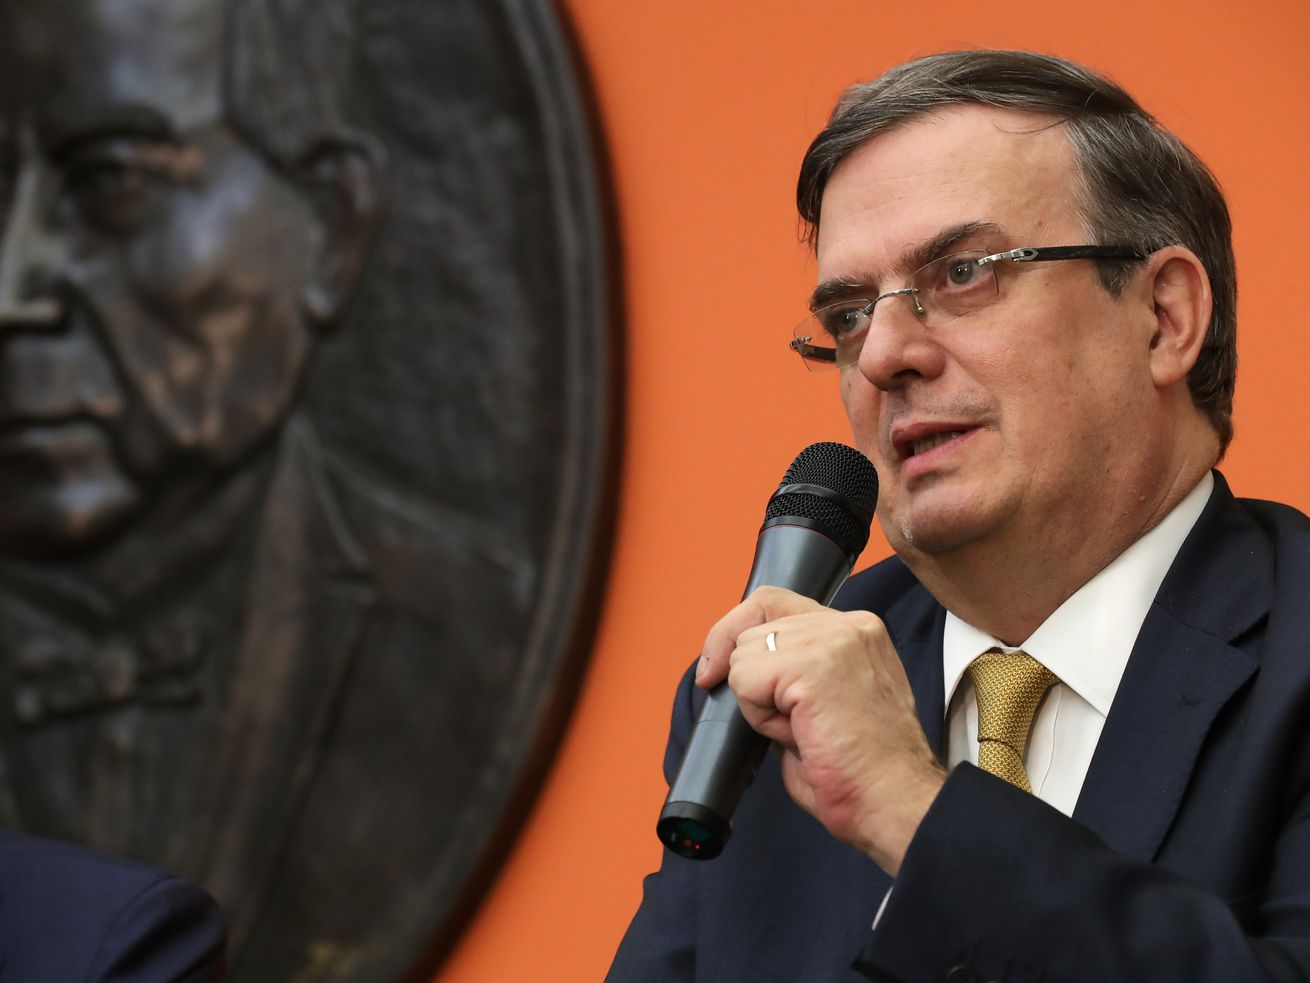 Mexican Foreign Affairs Secretary Marcelo Ebrard holds a news conference at the Mexican Embassy following talks with US Vice President Mike Pence and Secretary of State Mike Pompeo on June 5, 2019, in Washington, DC.